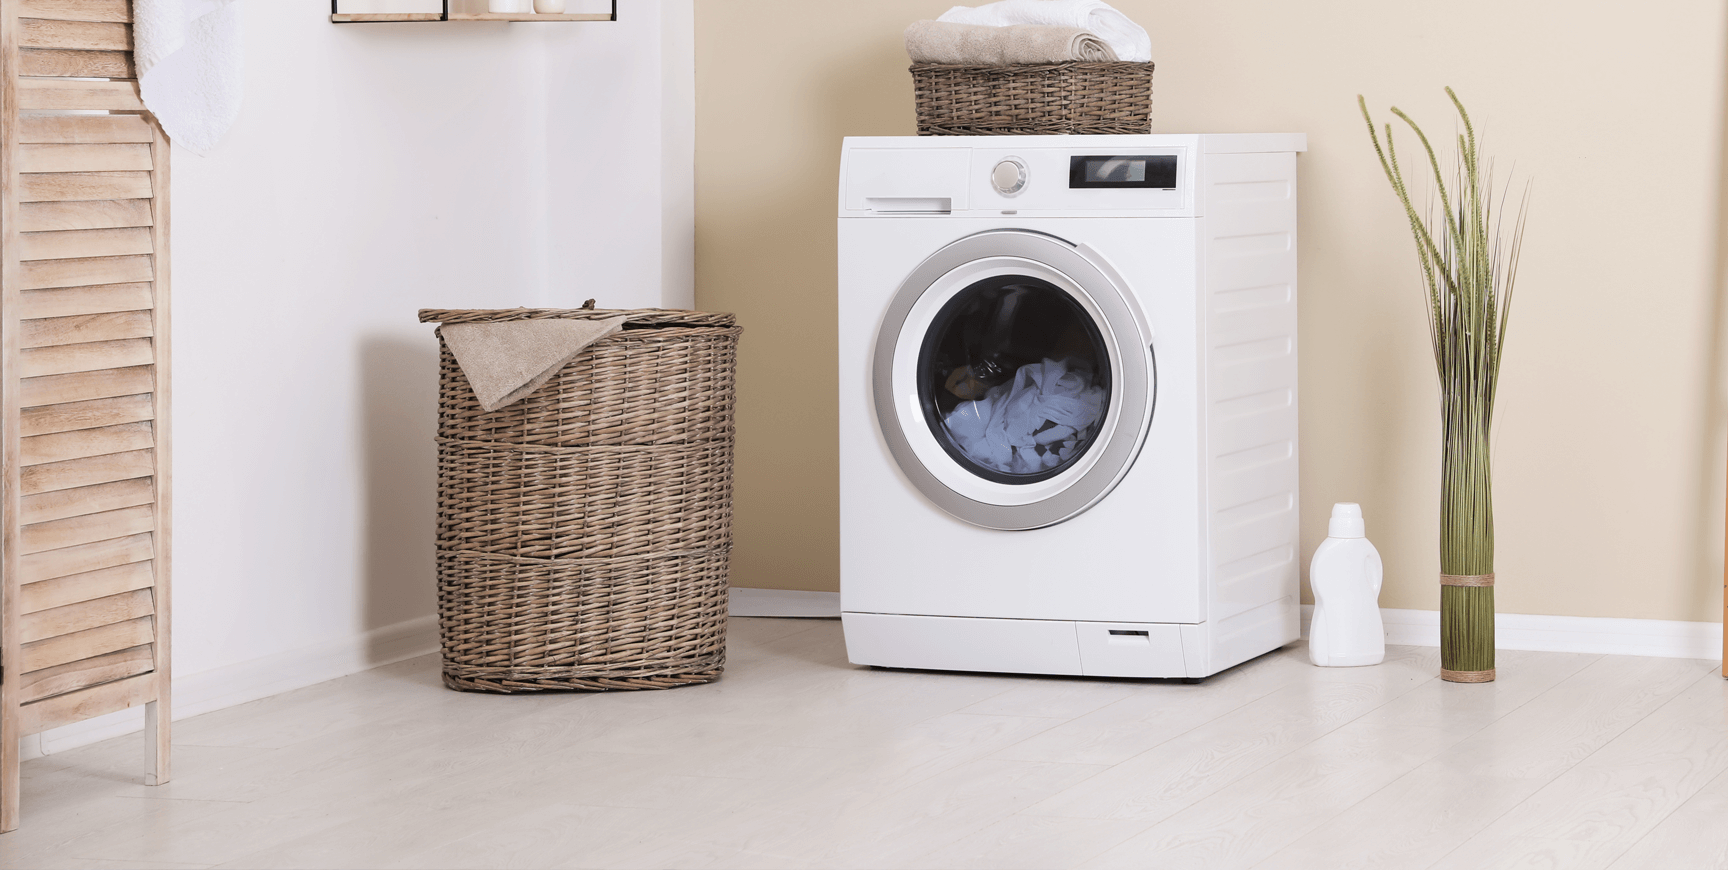 Clothes Washer in Modern Home